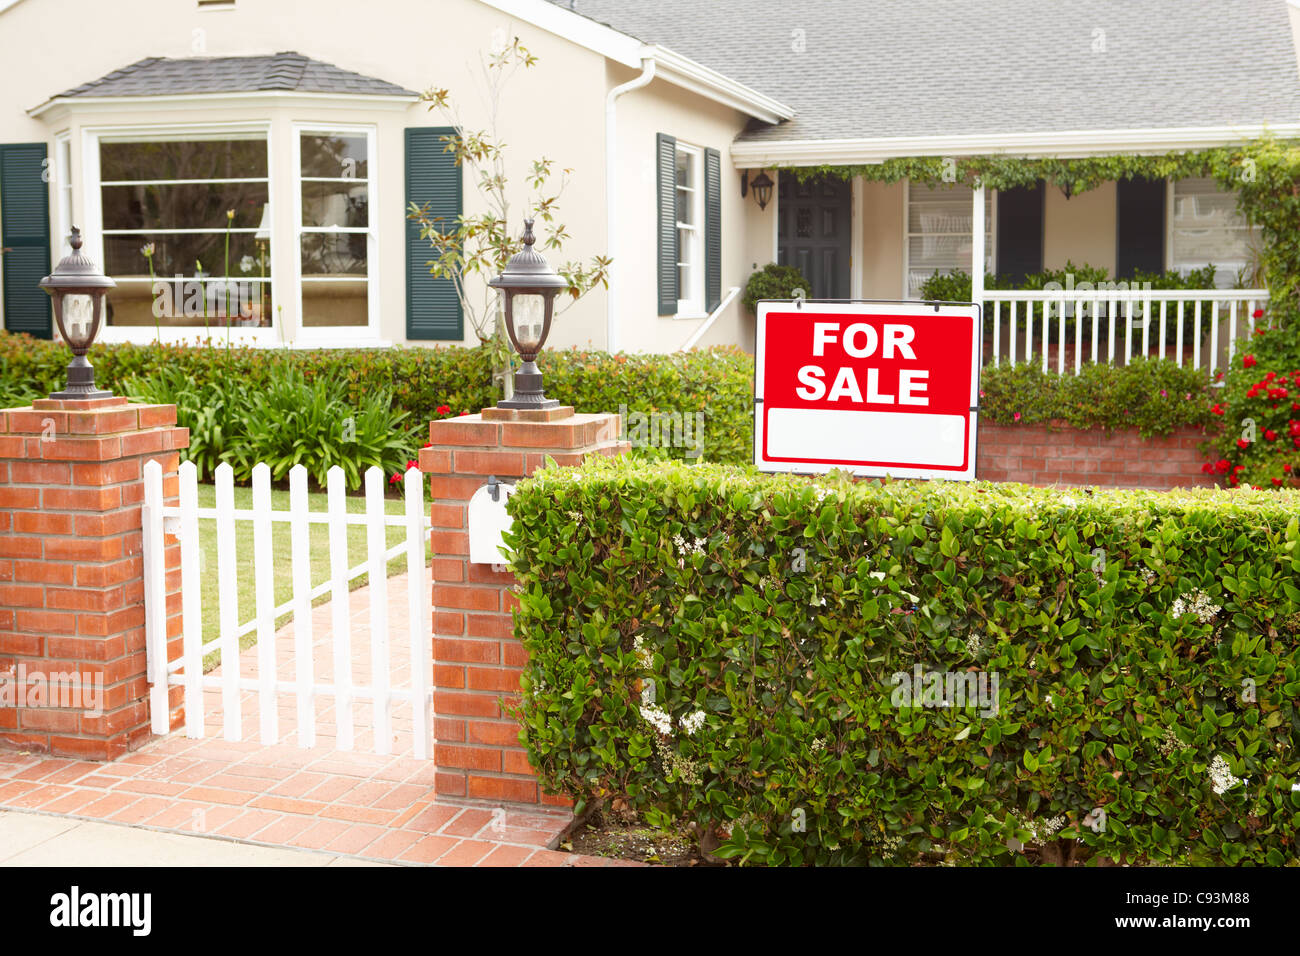 House for sale - Stock Image